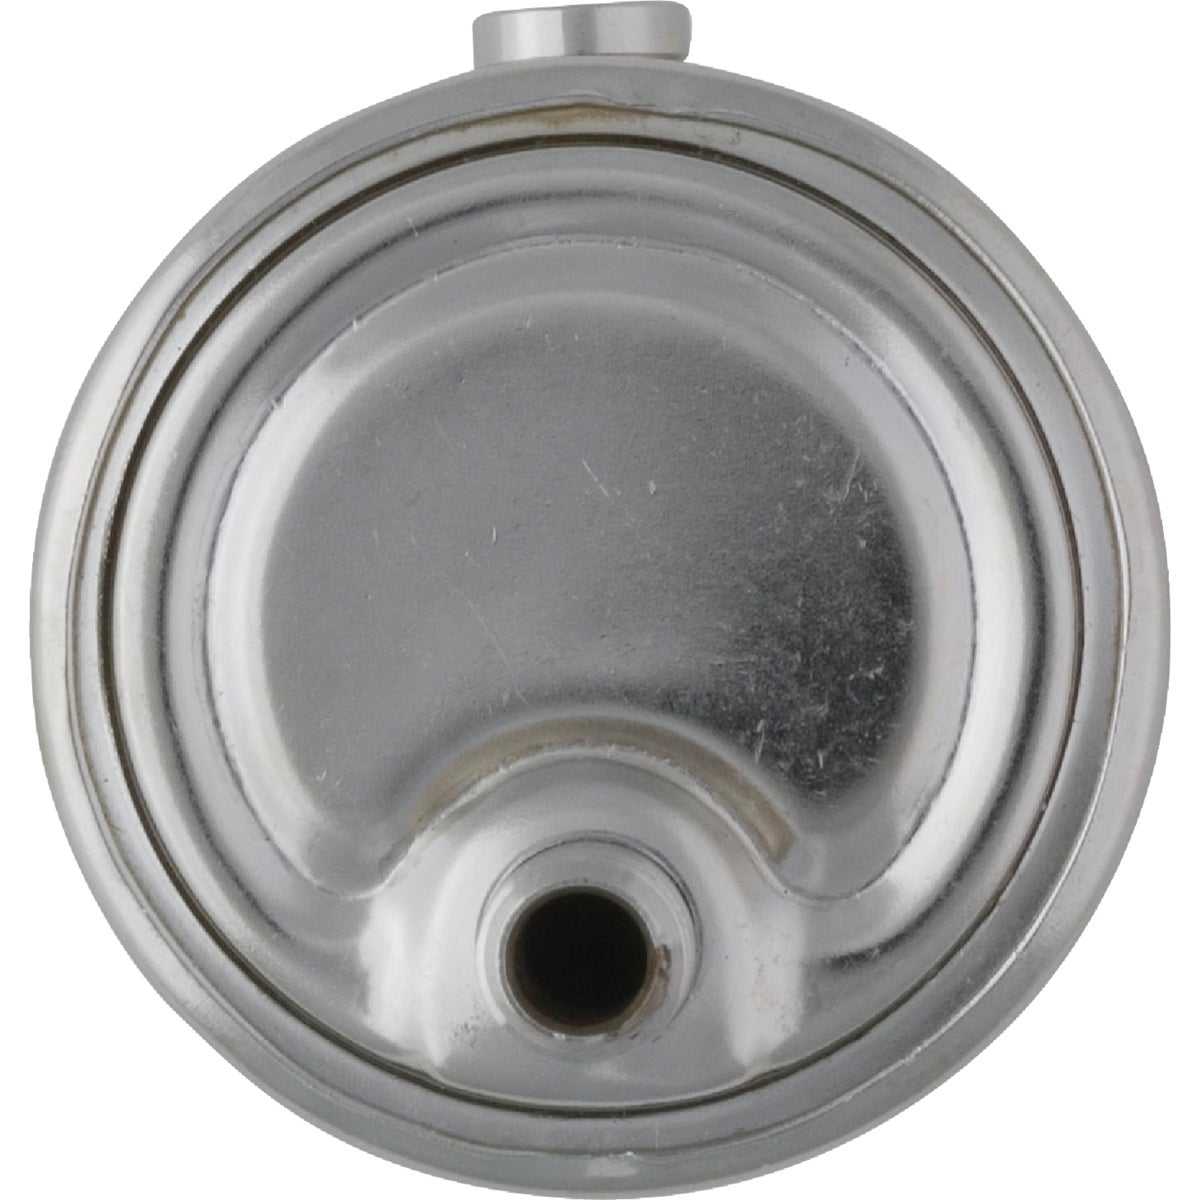 "ANGLE STEAM VENT - 5L-1/8"" by Maid O Mist"